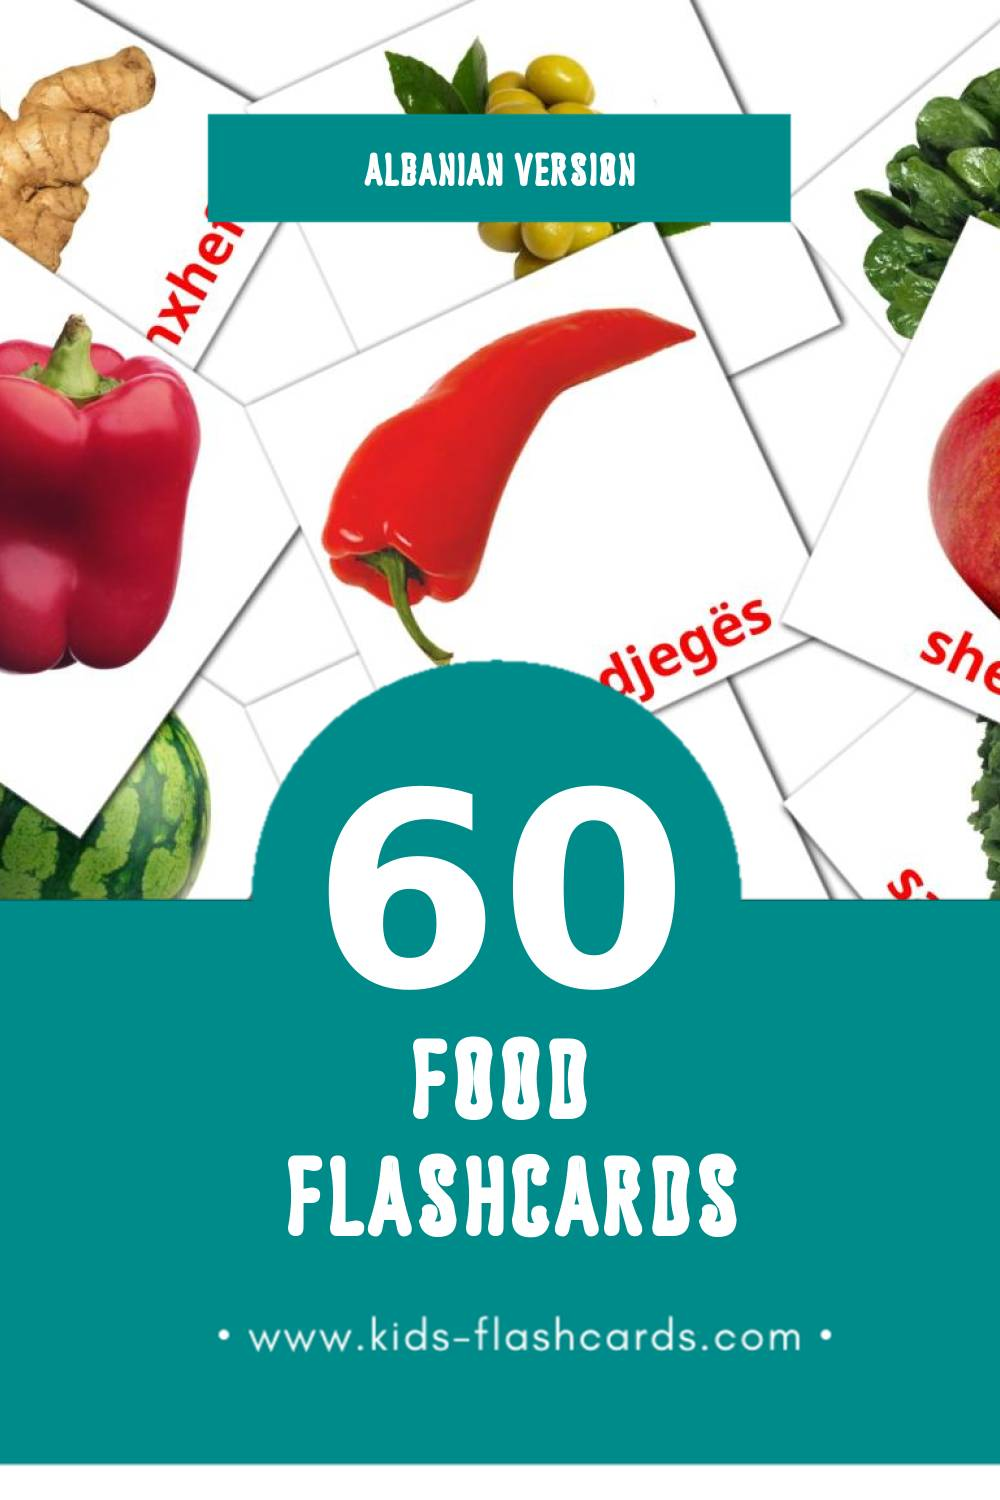 Visual Ushqim Flashcards for Toddlers (60 cards in Albanian)